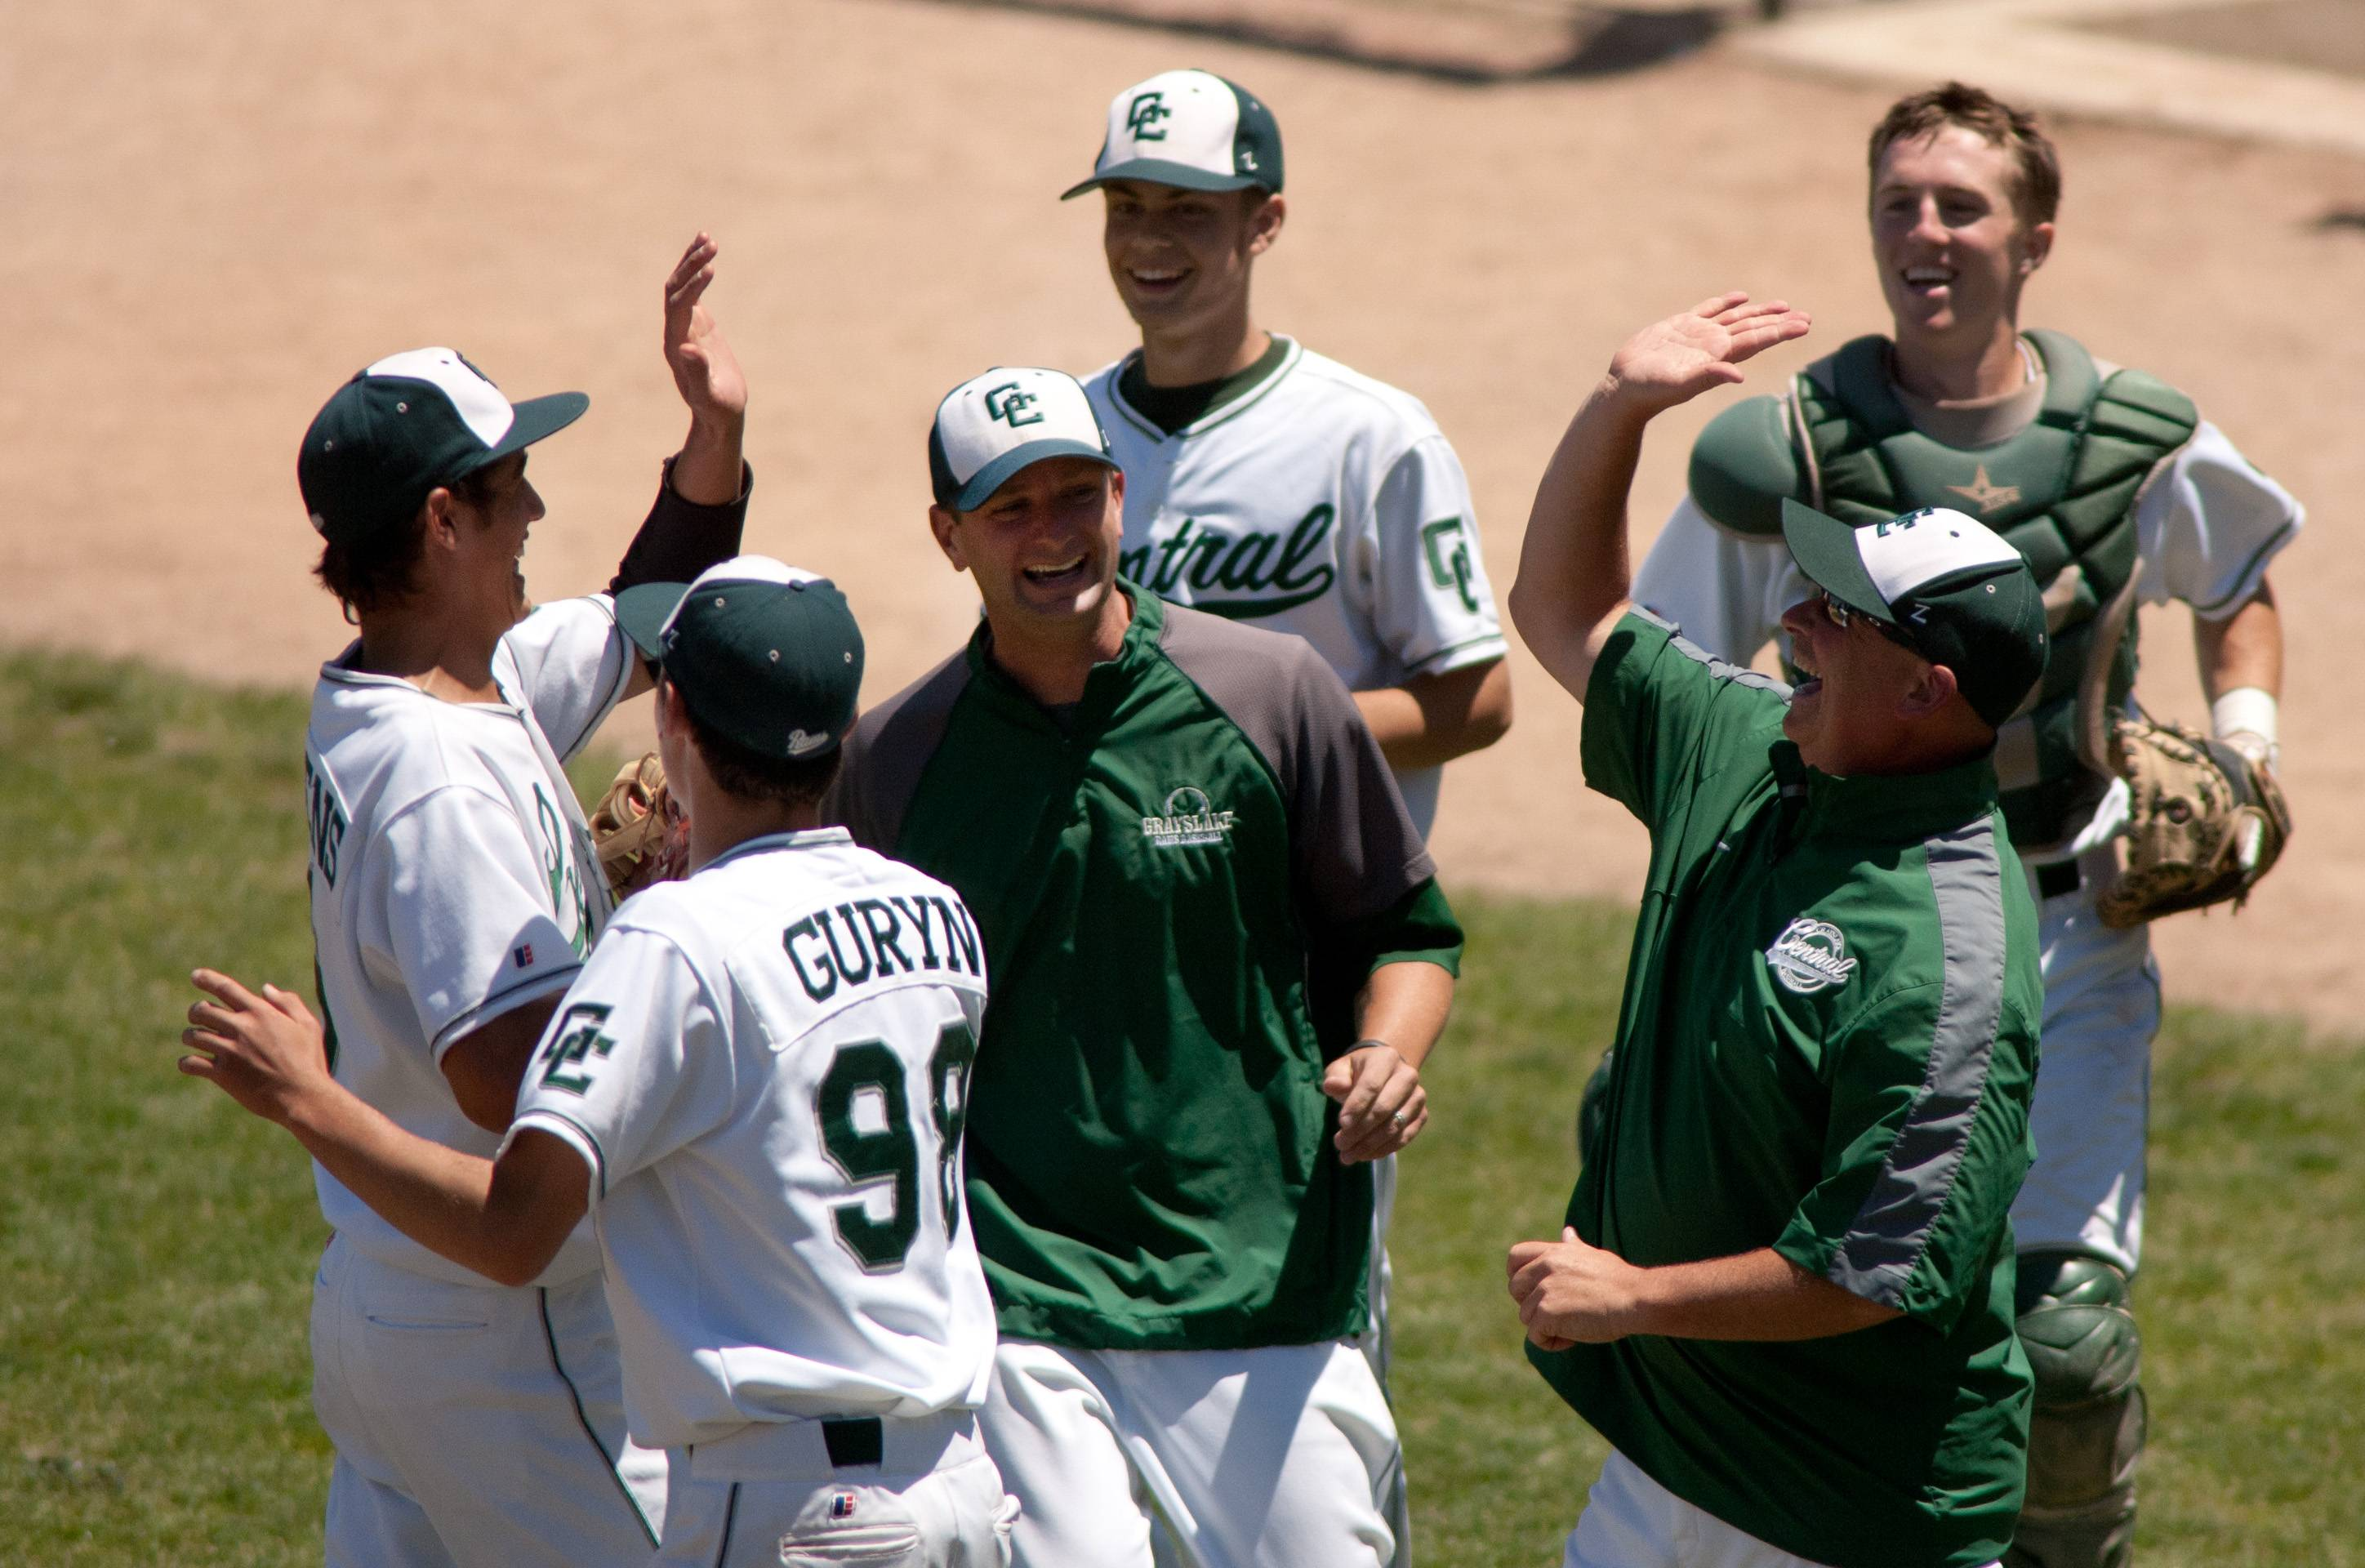 Grayslake Central pitcher David Llorens, left, is high-fived by teammates and coaches in the third inning against Springfield Sacred Heart-Griffin during the Class 3A baseball state semifinals at Silver Cross Field in Joliet.